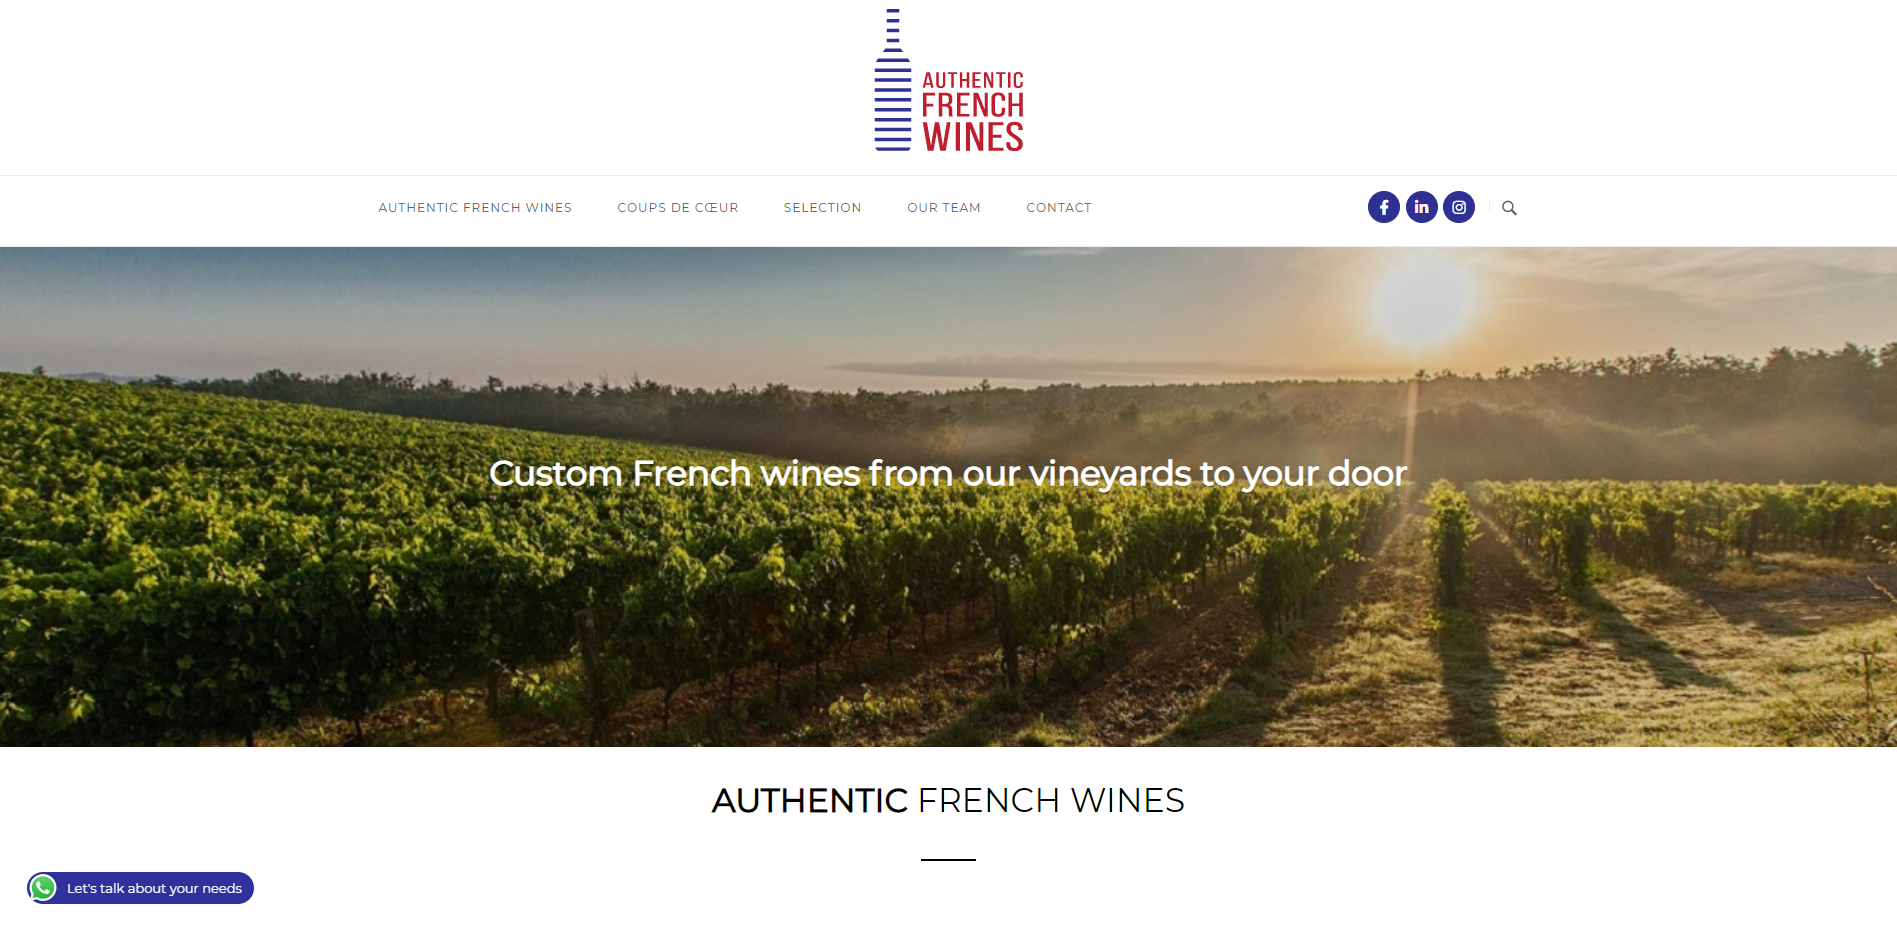 Authentic French Wines Adwines - Création site internet Geoffrey Leduc